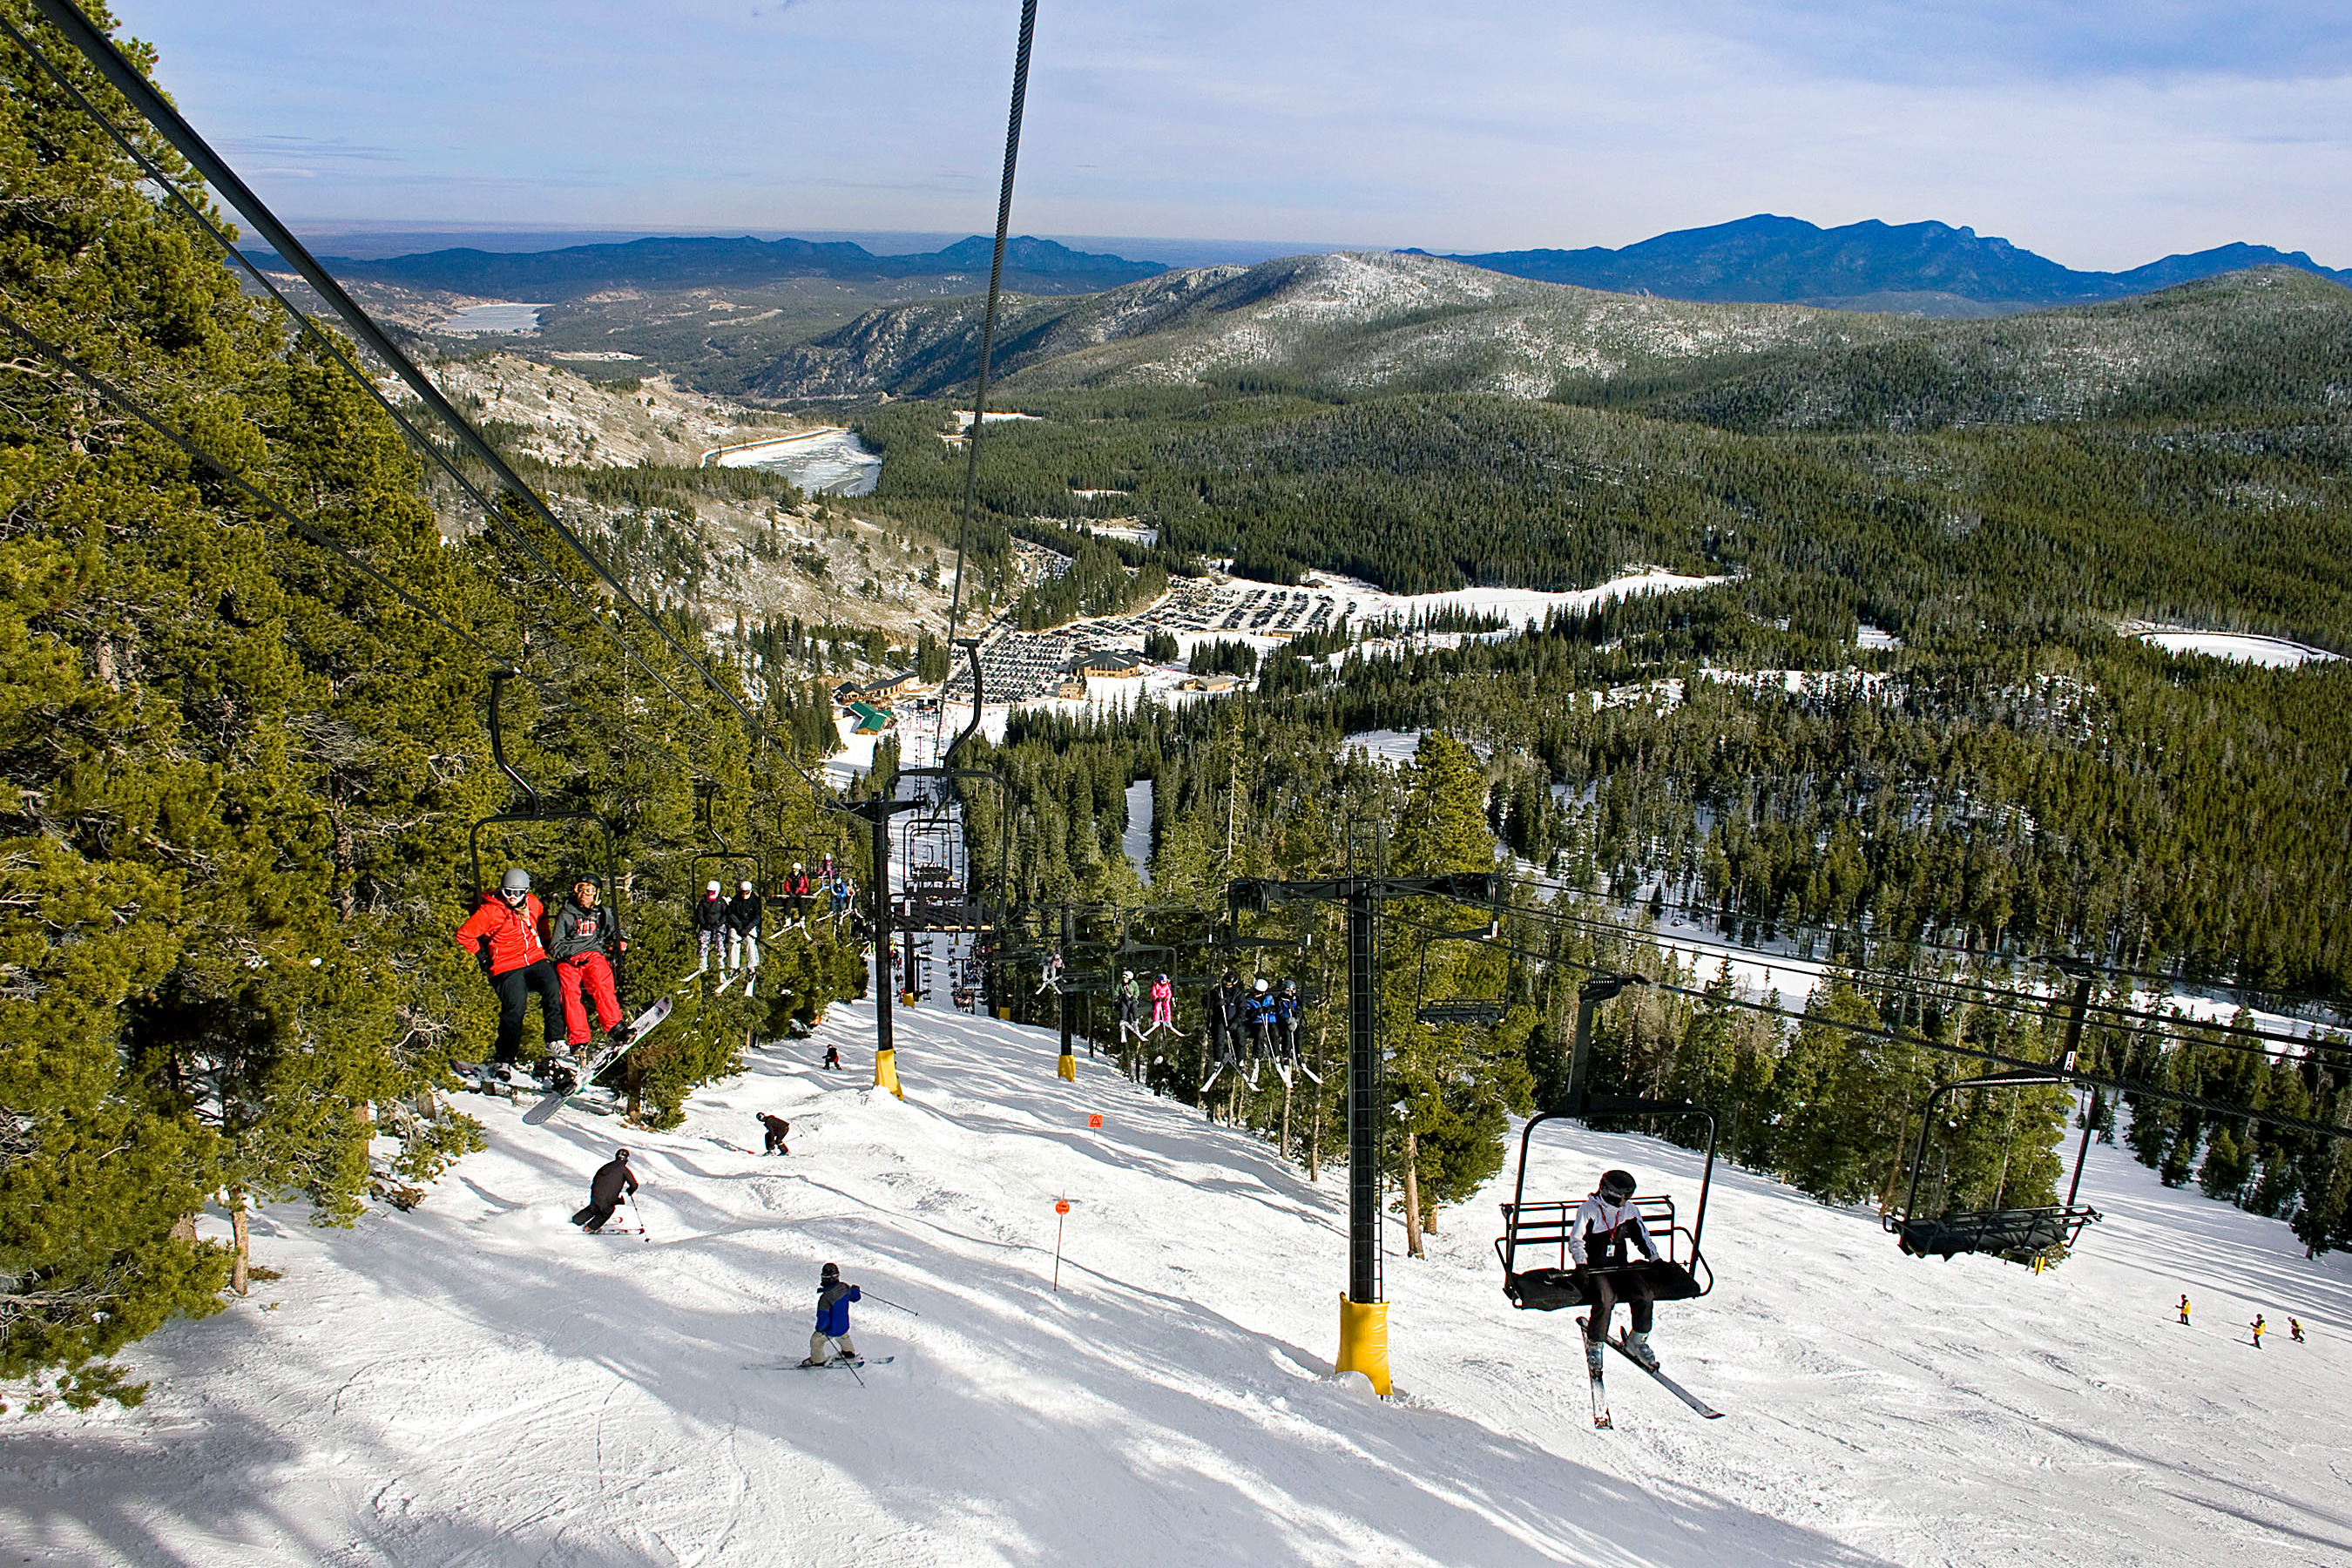 Skiers ride the lift at Eldora Mountain Resort near Colorado Springs.